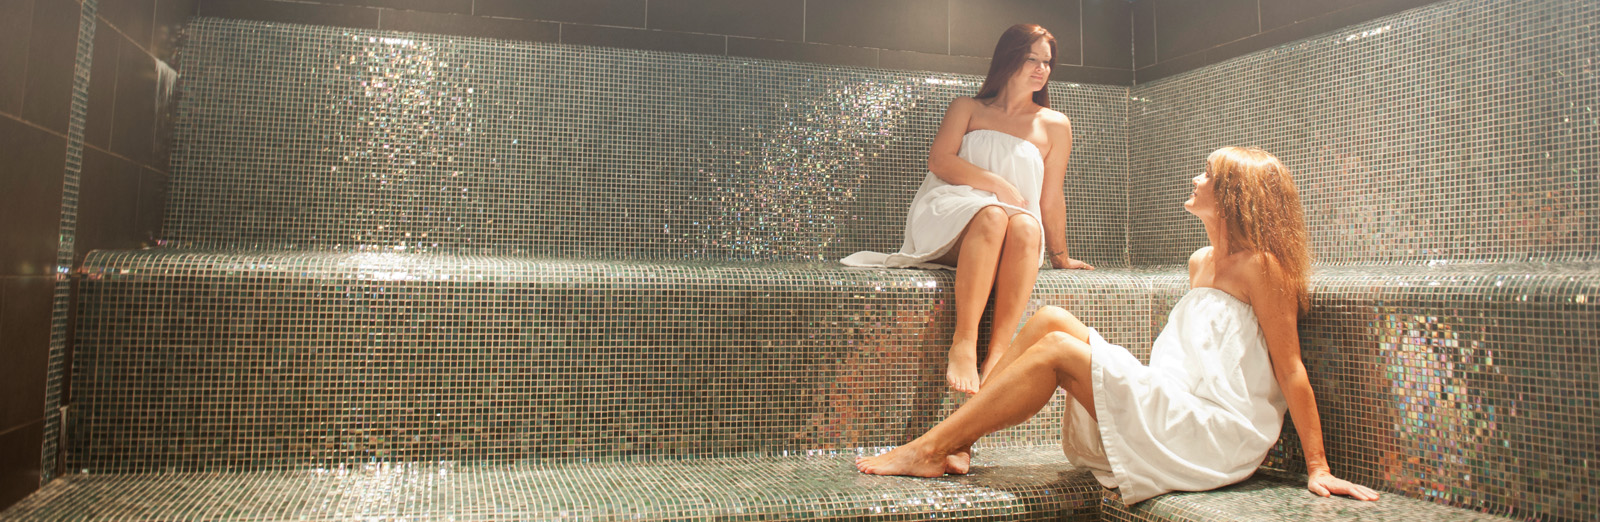 STEAM ROOM MANUFACTURER AND INSTALLER SOUTH AFRICA